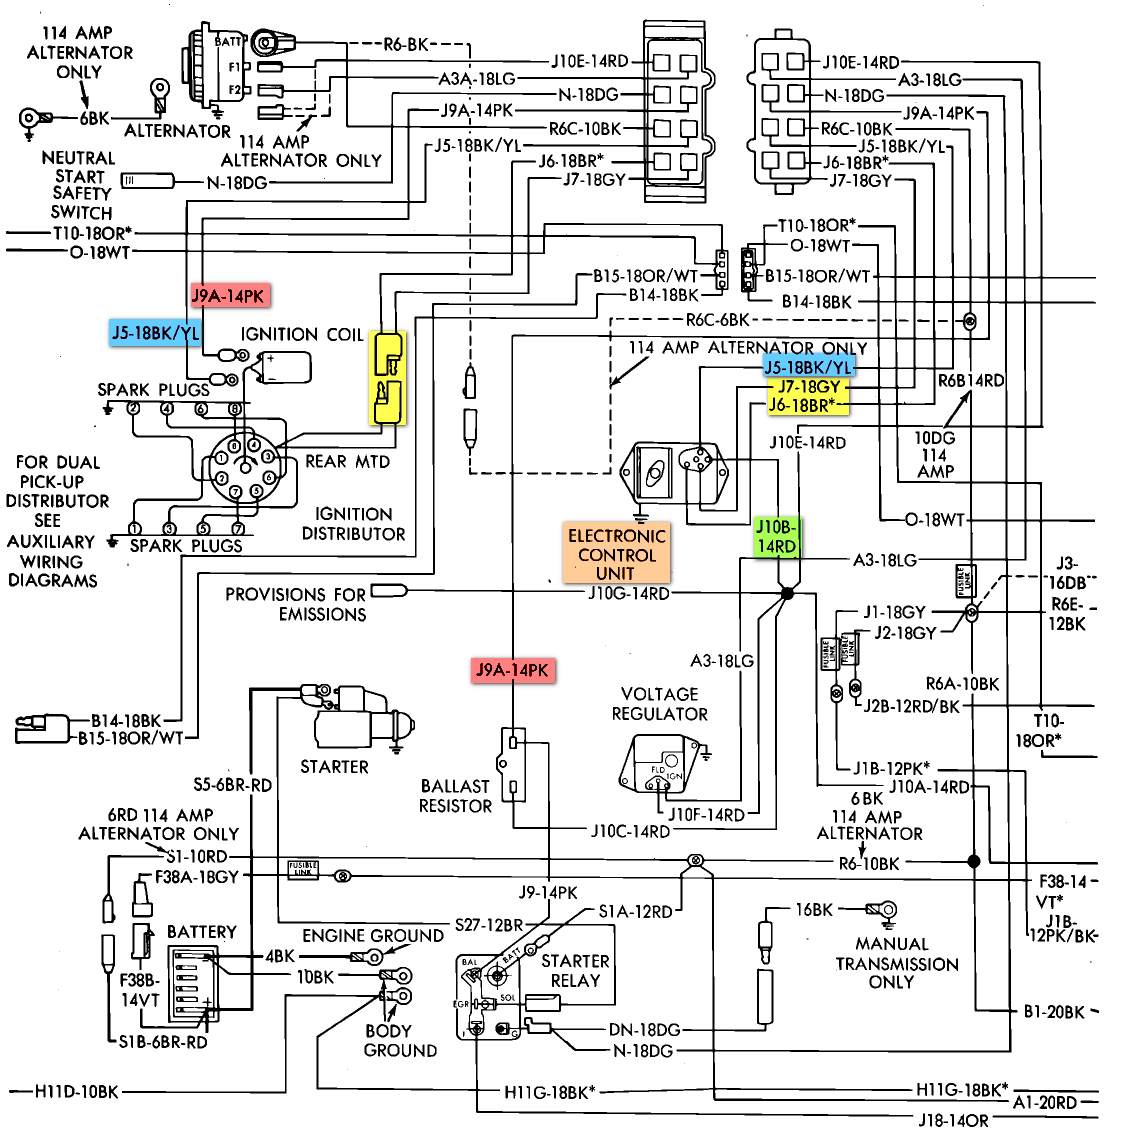 1978 Plymouth Volare Wiring Diagram Free Picture 2013 Chevy Express Wiring Diagram Pto Pipiing Sampwire Jeanjaures37 Fr